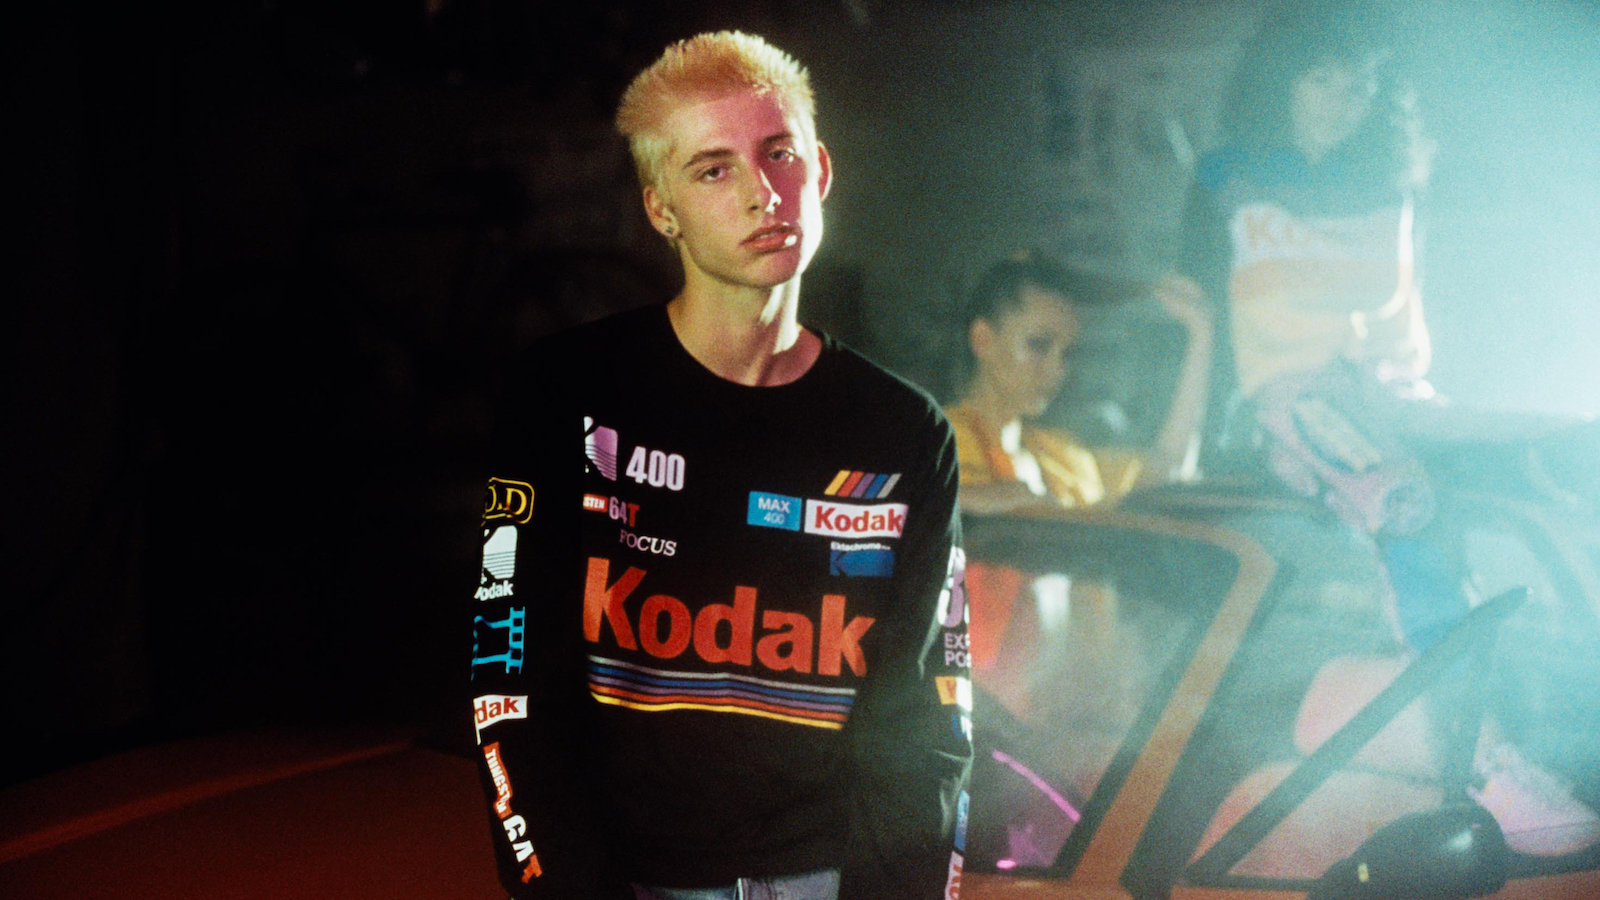 fd184516b Kodak Resurrects Iconic '90s Look with New Apparel Collection